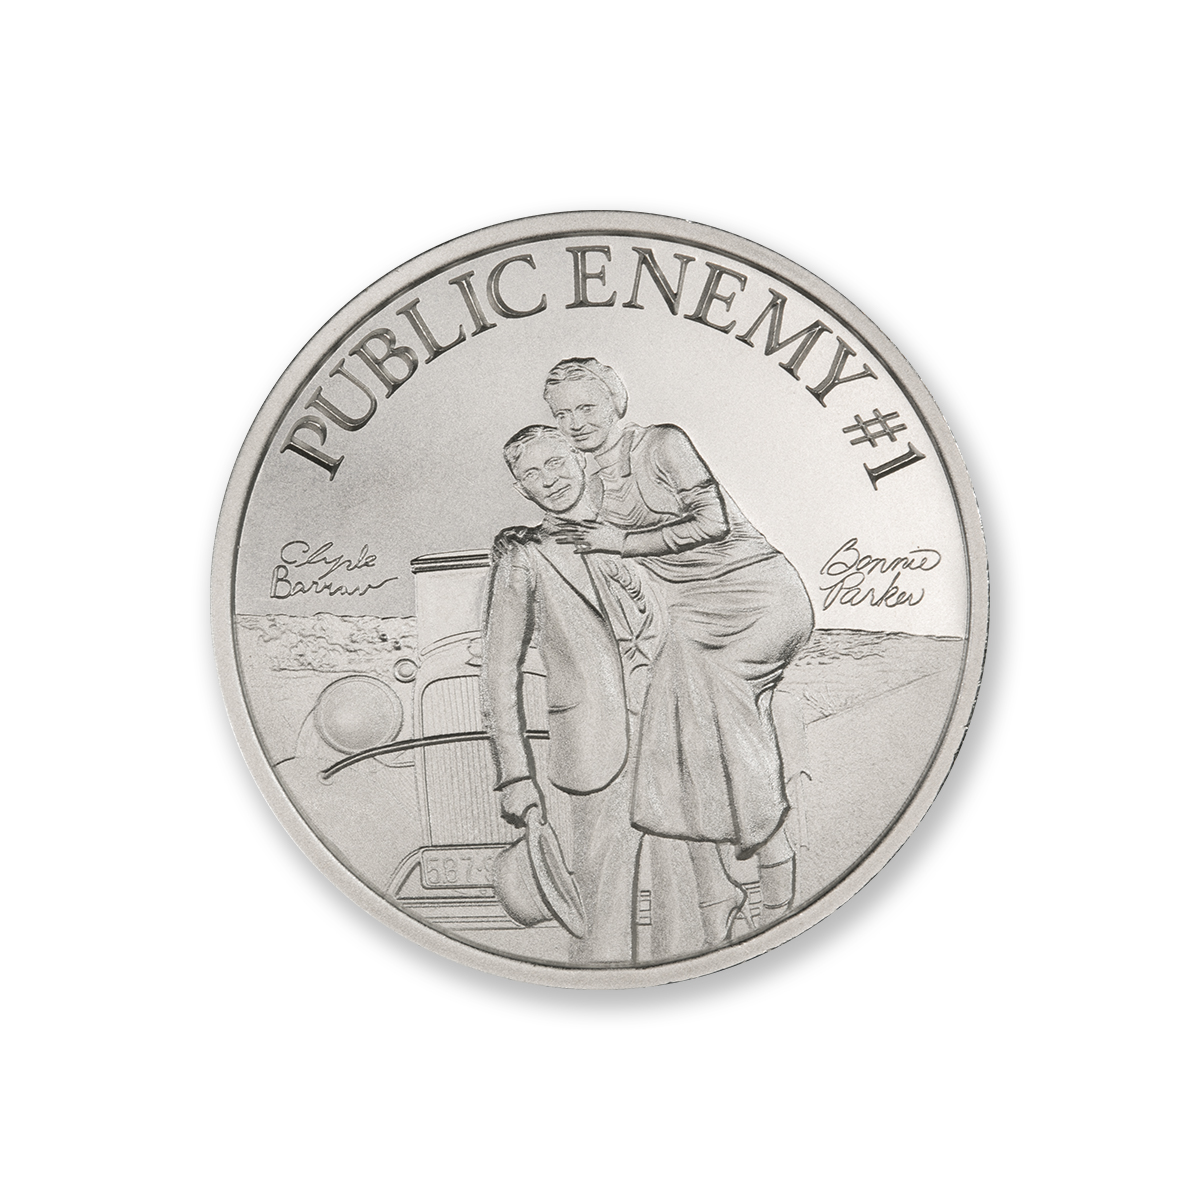 PUBLIC ENEMY #1 – BONNIE AND CLYDE – 2 TROY OUNCE – 39MM